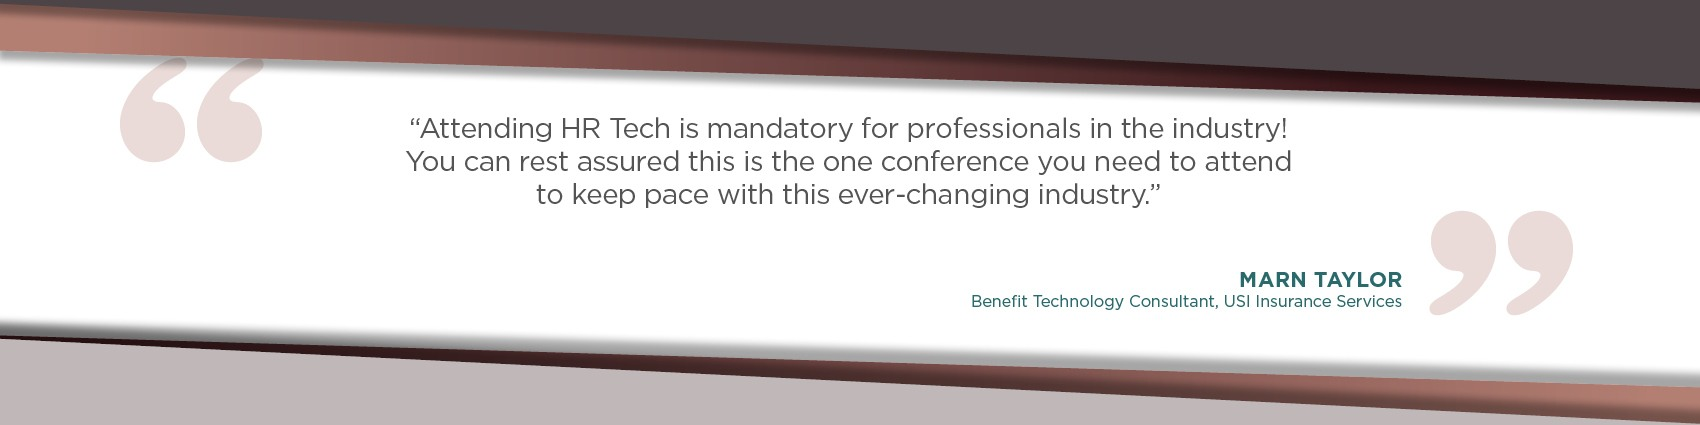 Attending HR Tech is mandatory for professionals in the industry! You can rest assured this is the one conference you need to attend to keep pace with this ever-changing industry. - Marn Taylor